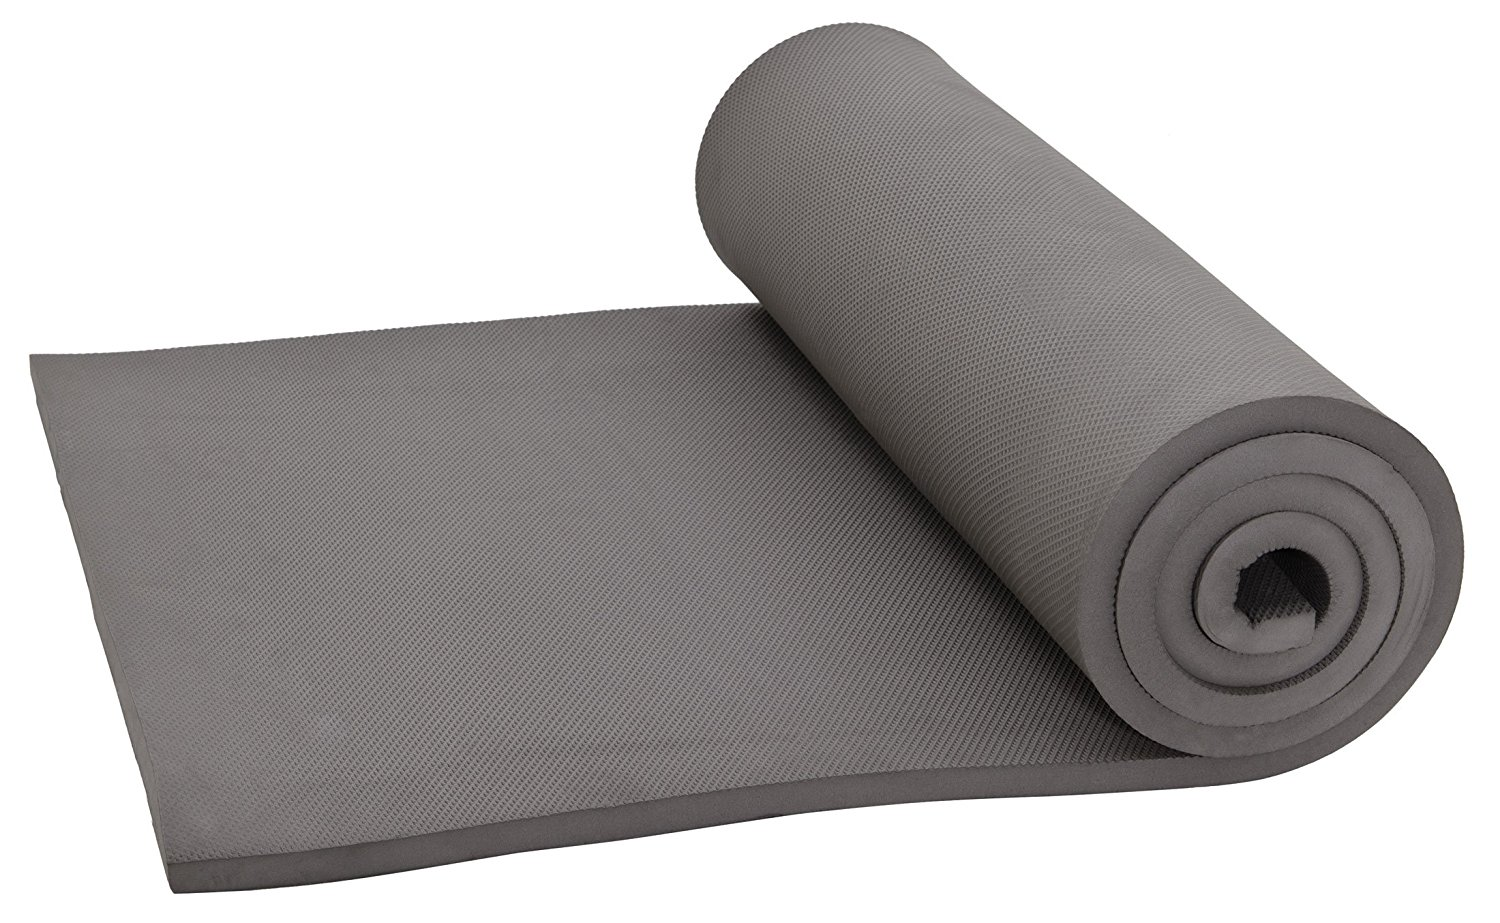 5 Unique Sleeping Mats for Comfy Camping Trips